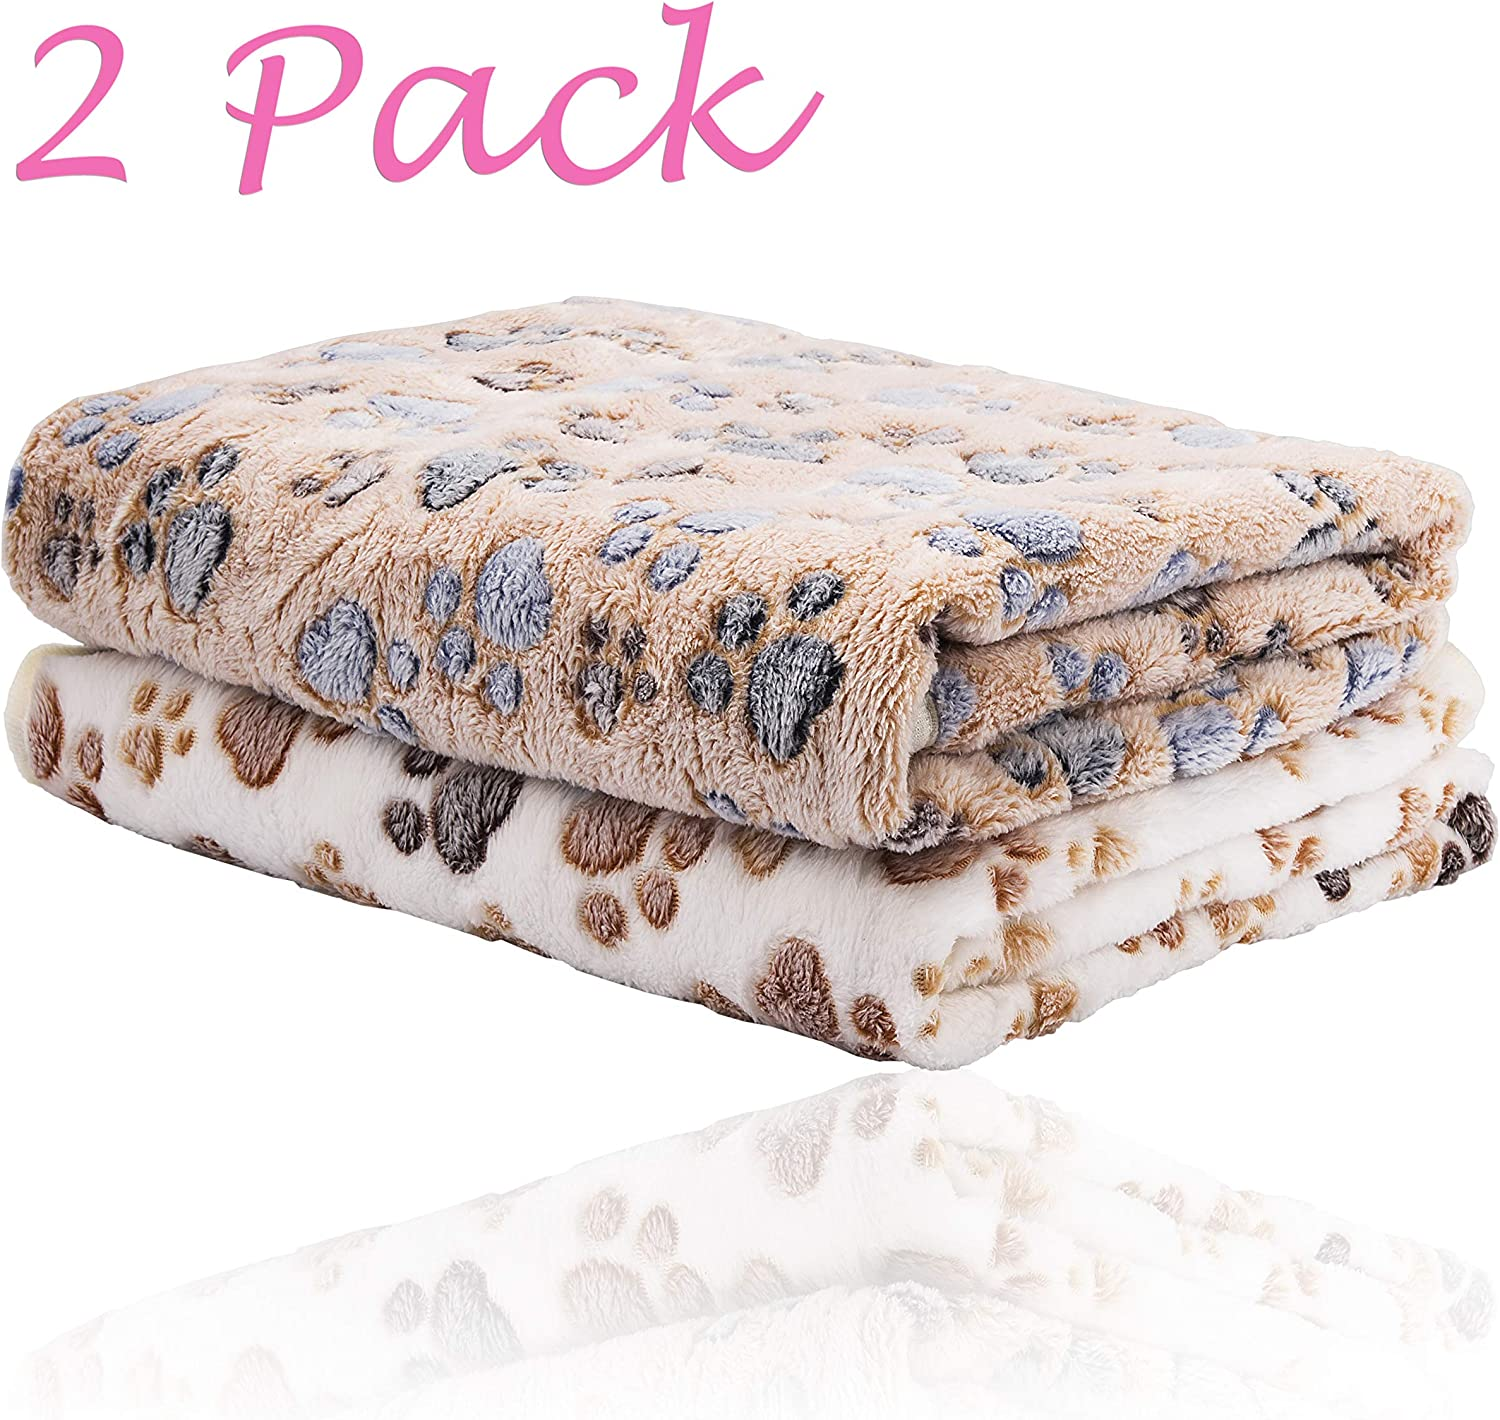 iNNEXT 2 Pack Puppy Blanket for Pet Cushion Small Dog Cat Bed Soft Warm Sleep Mat, Pet Dog Cat Puppy Kitten Soft Blanket Doggy Warm Bed Mat Paw Print: Home & Kitchen